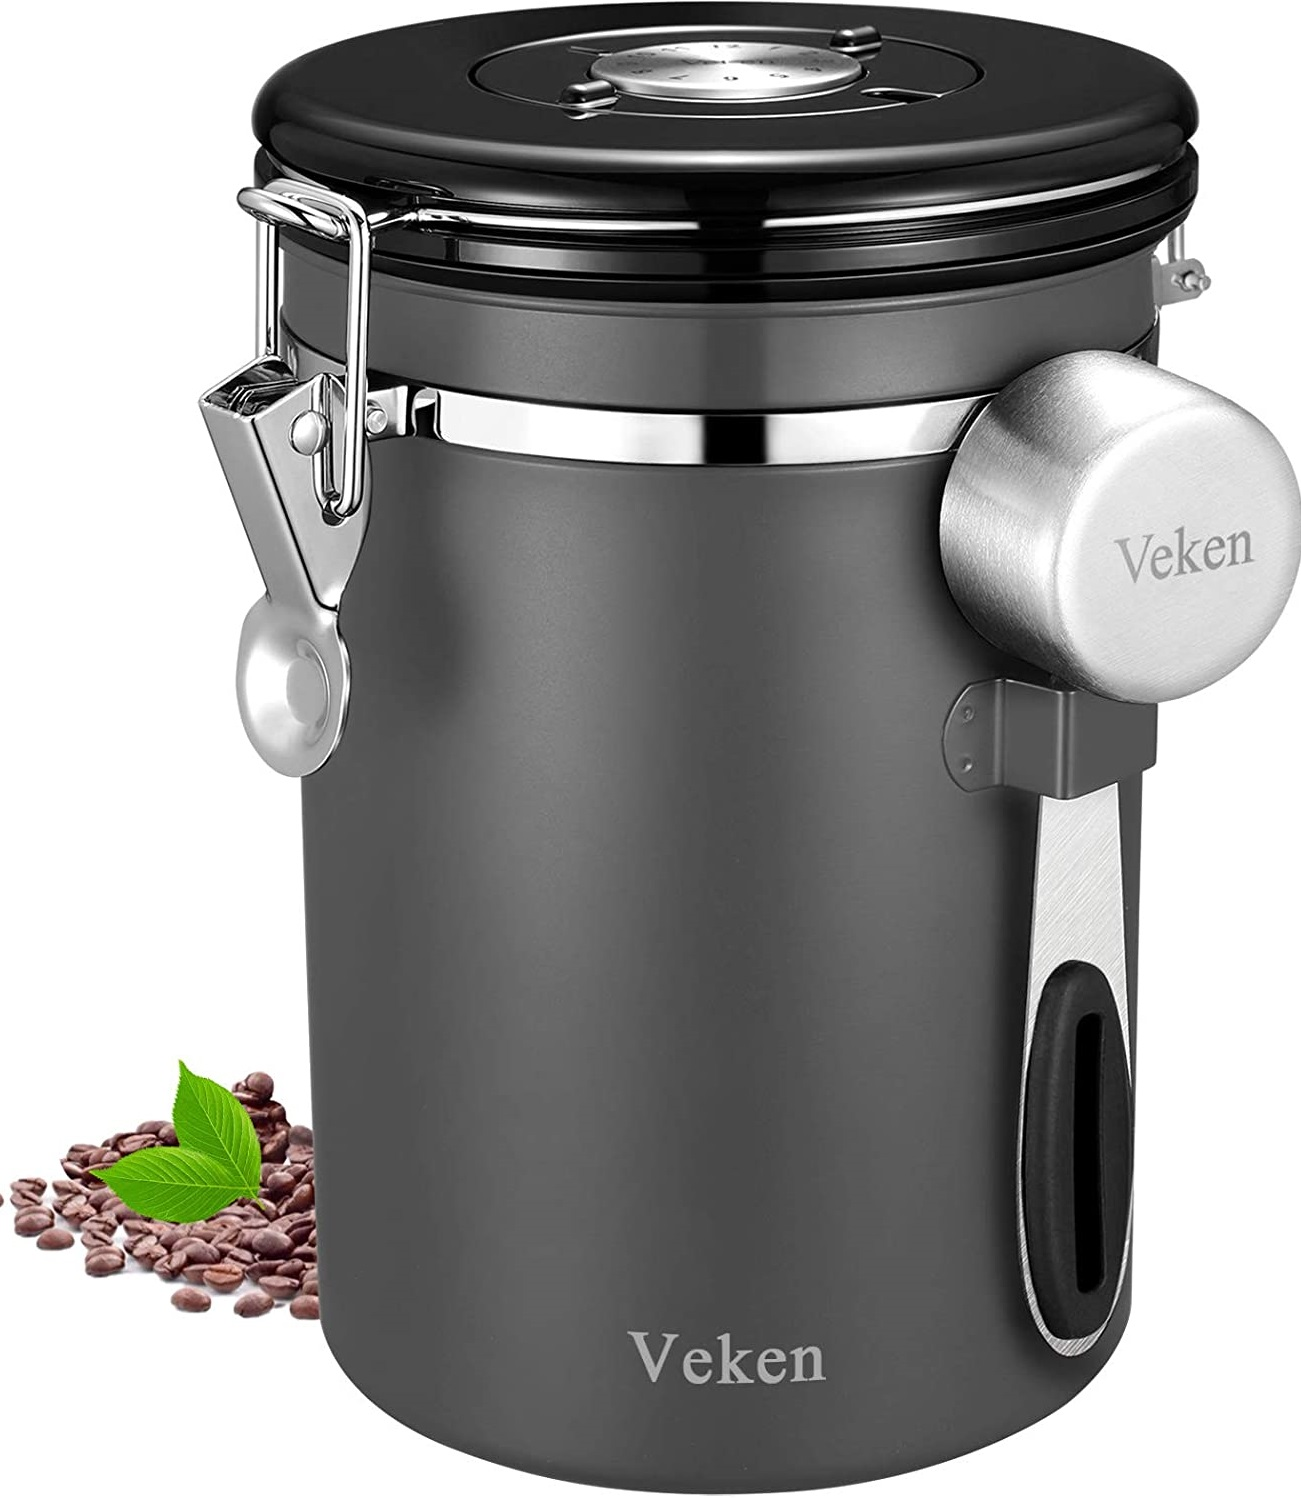 Veken Coffee Canister